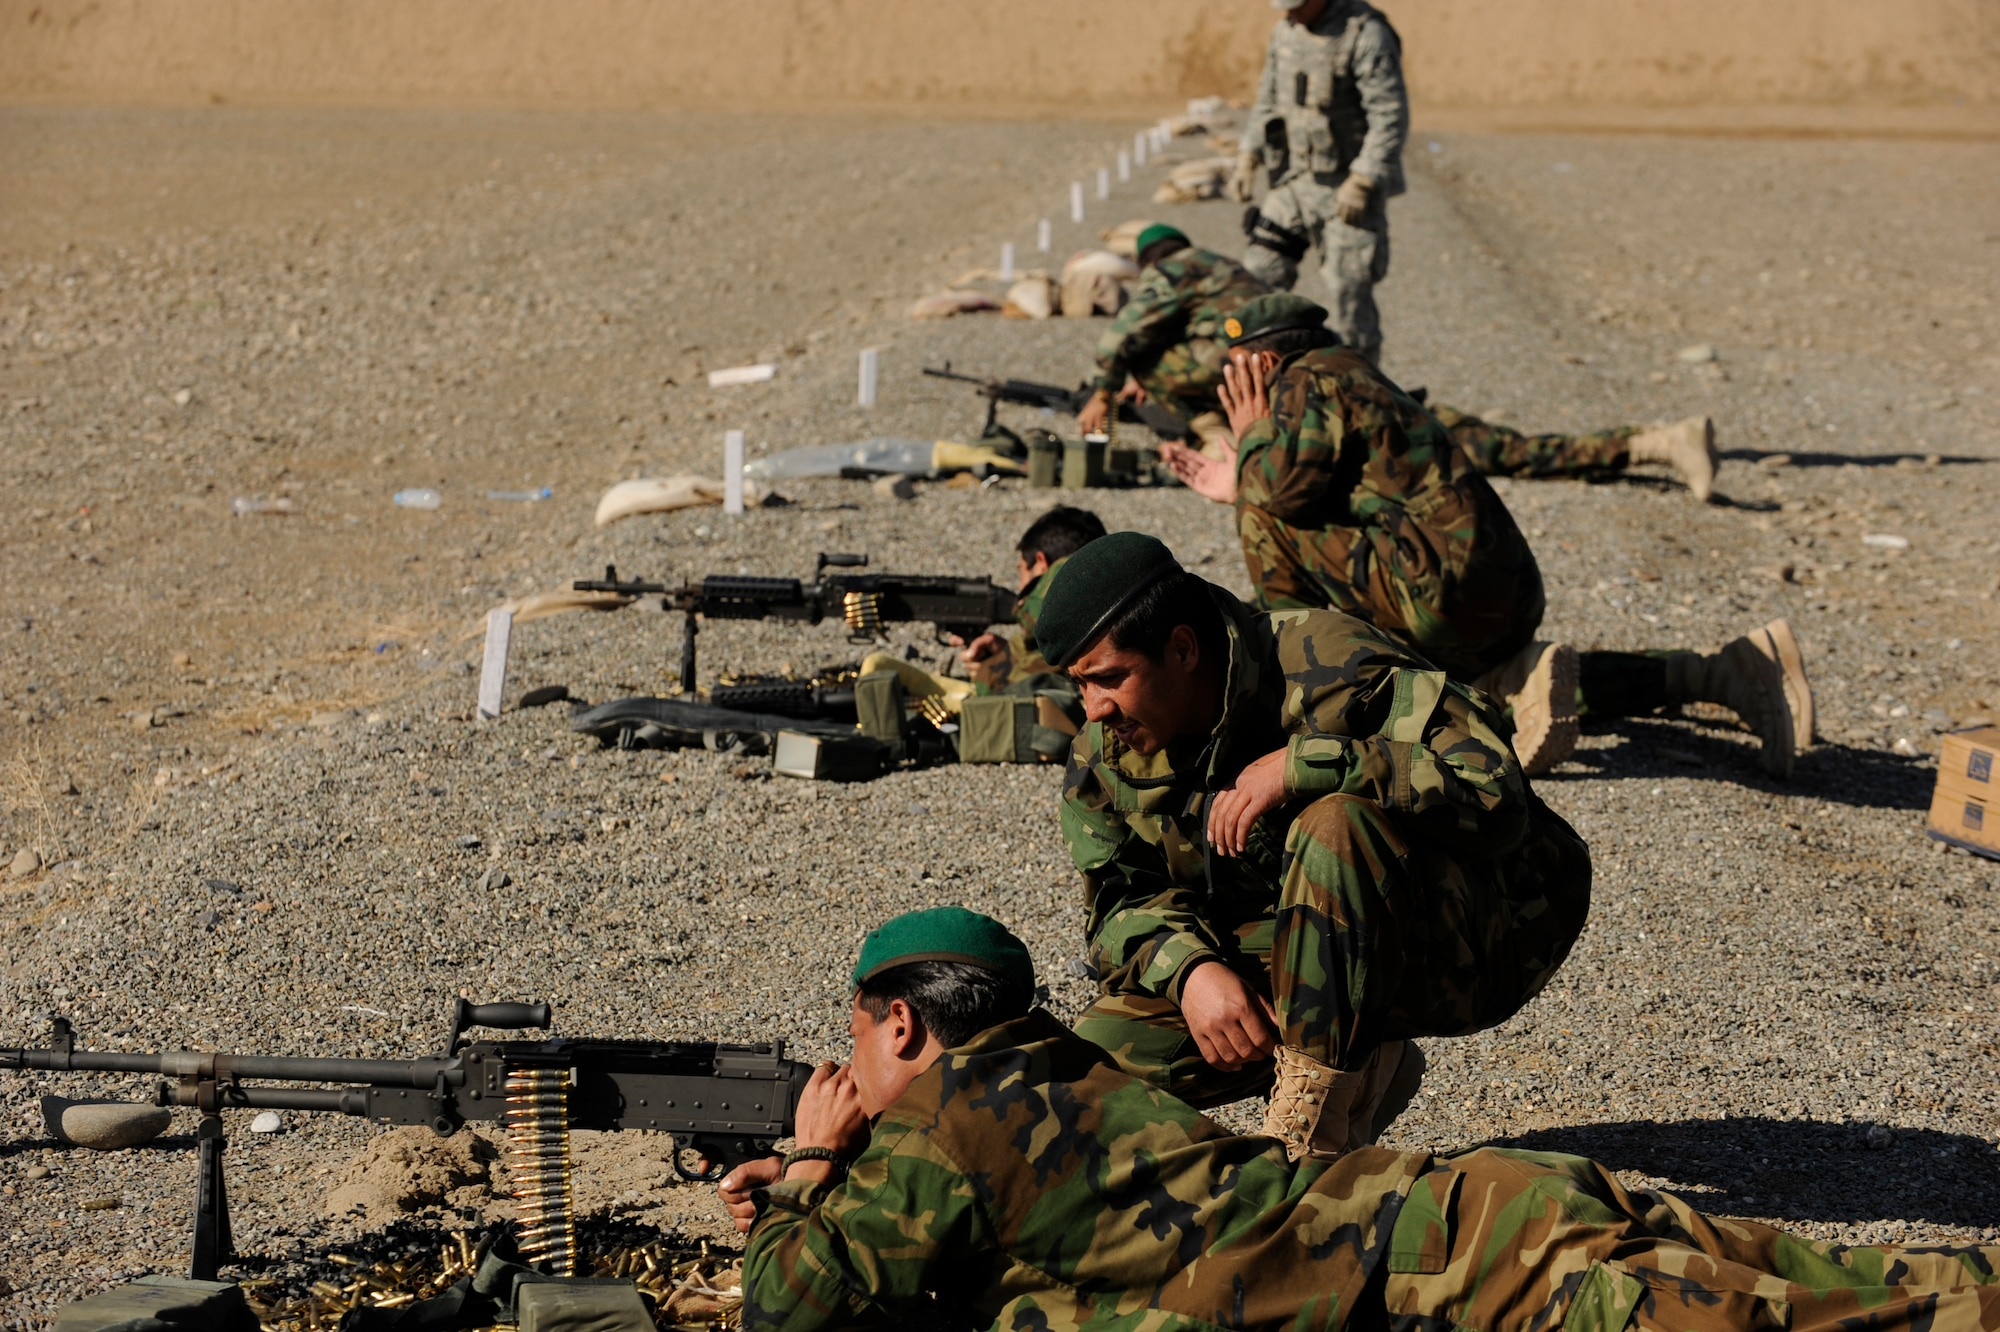 Afghanistan National Army Air Corps soldiers engage targets with  M-240B machine guns during weapons familiarization training in Kandahar, Afghanistan, Jan. 4, 2010.  The Afghan soldiers are training with 738th Air Expeditionary Advisory Group Airmen to gain the skills needed to fulfill security requirements independently.  (U.S. Air Force photo/Staff Sgt. Manuel J. Martinez/Released)